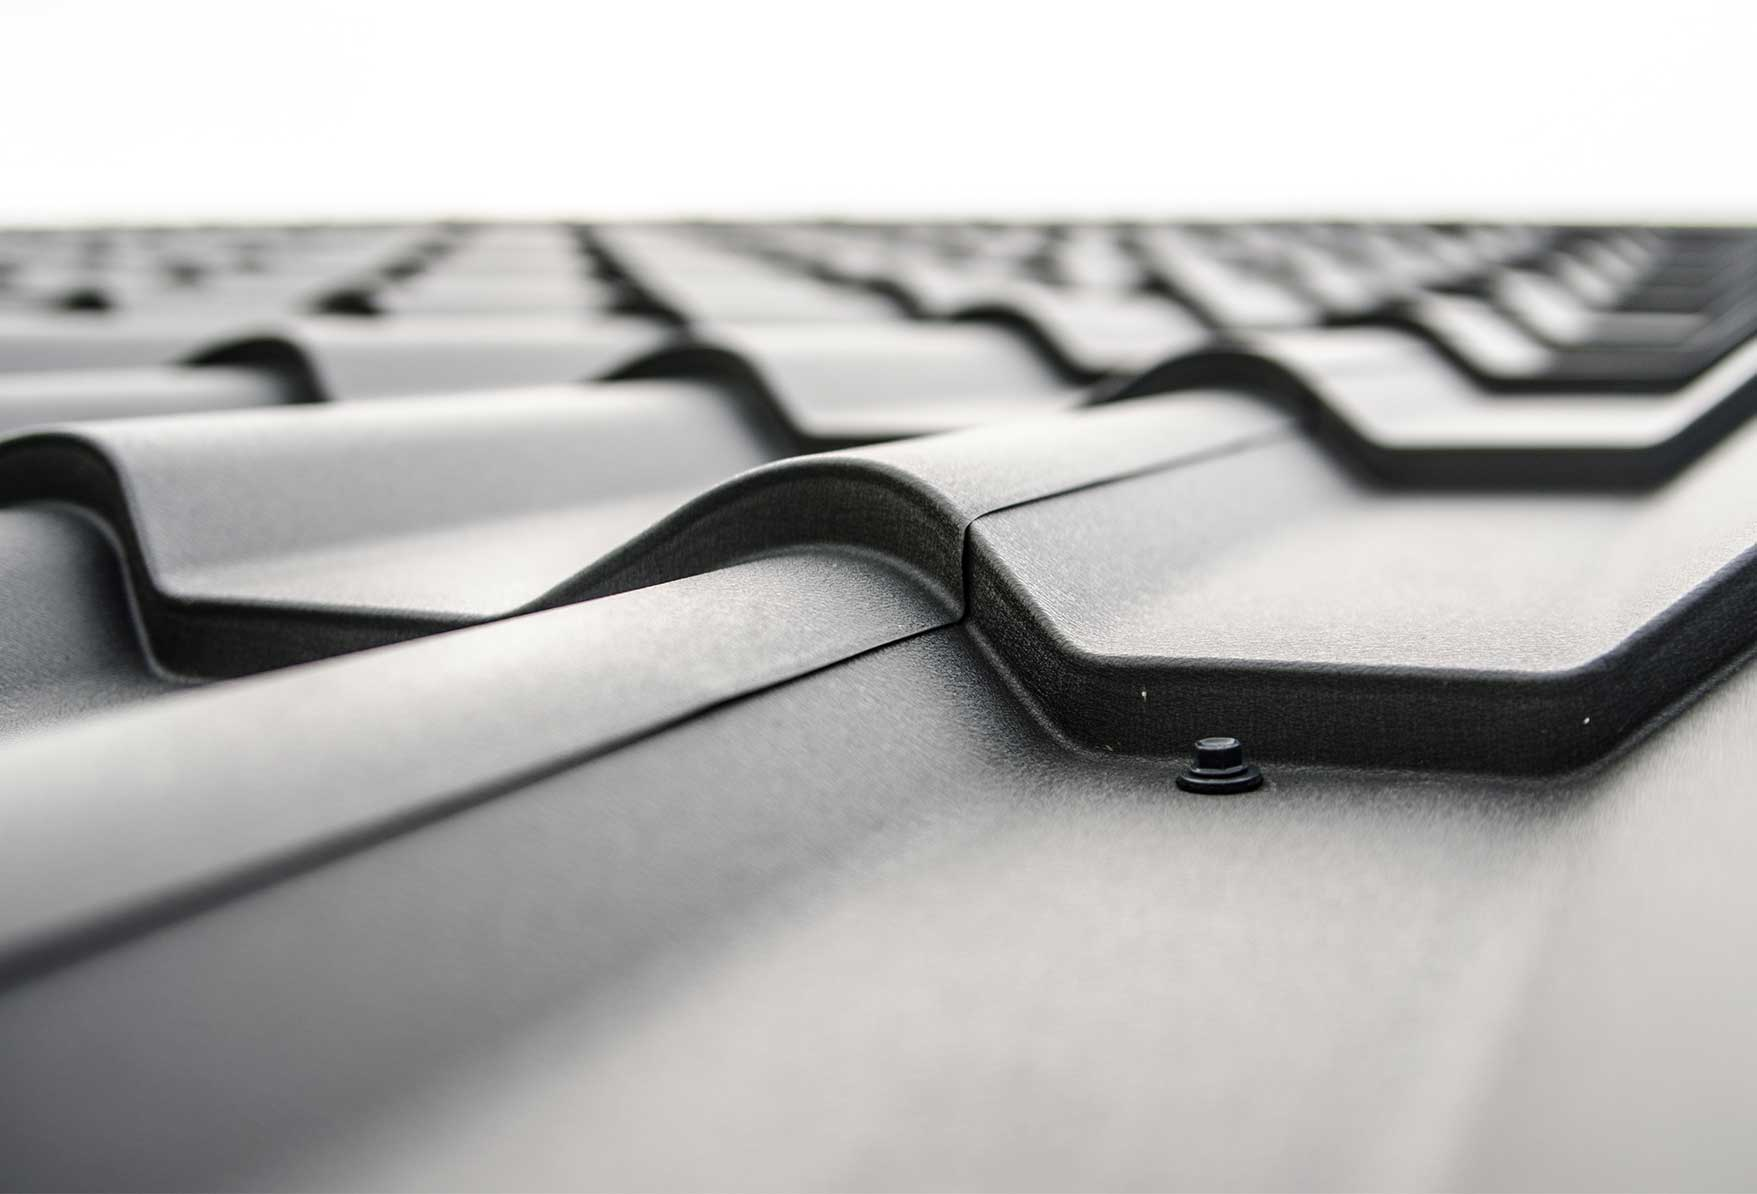 Dedicated Roofing & Exteriors - Professional Roofing Calgary Roof Repair Roof Replacement Roof Inspection Metal Roofing